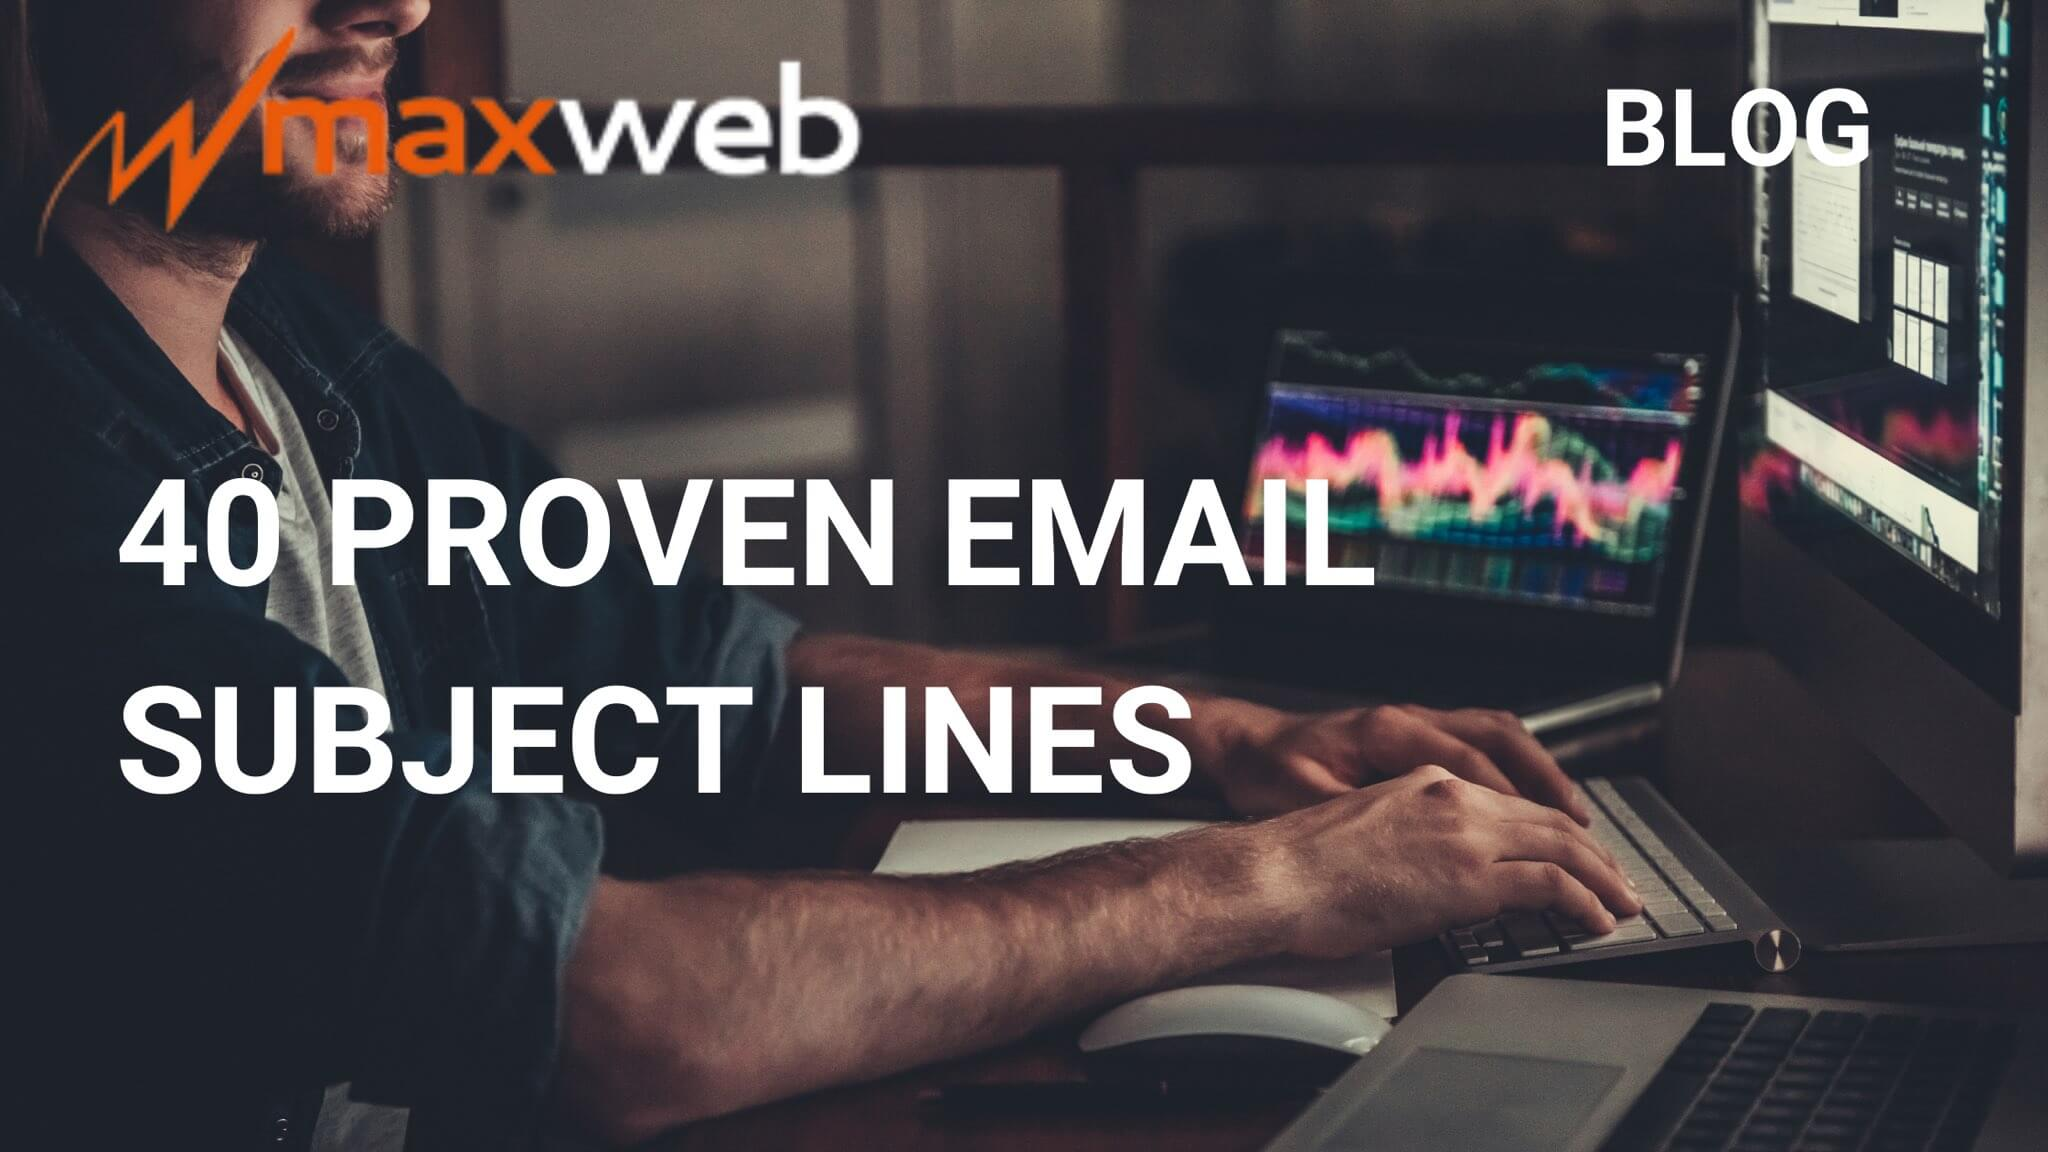 40 Proven Email Subject Lines That'll Help Skyrocket Your Affiliate Marketing Revenue